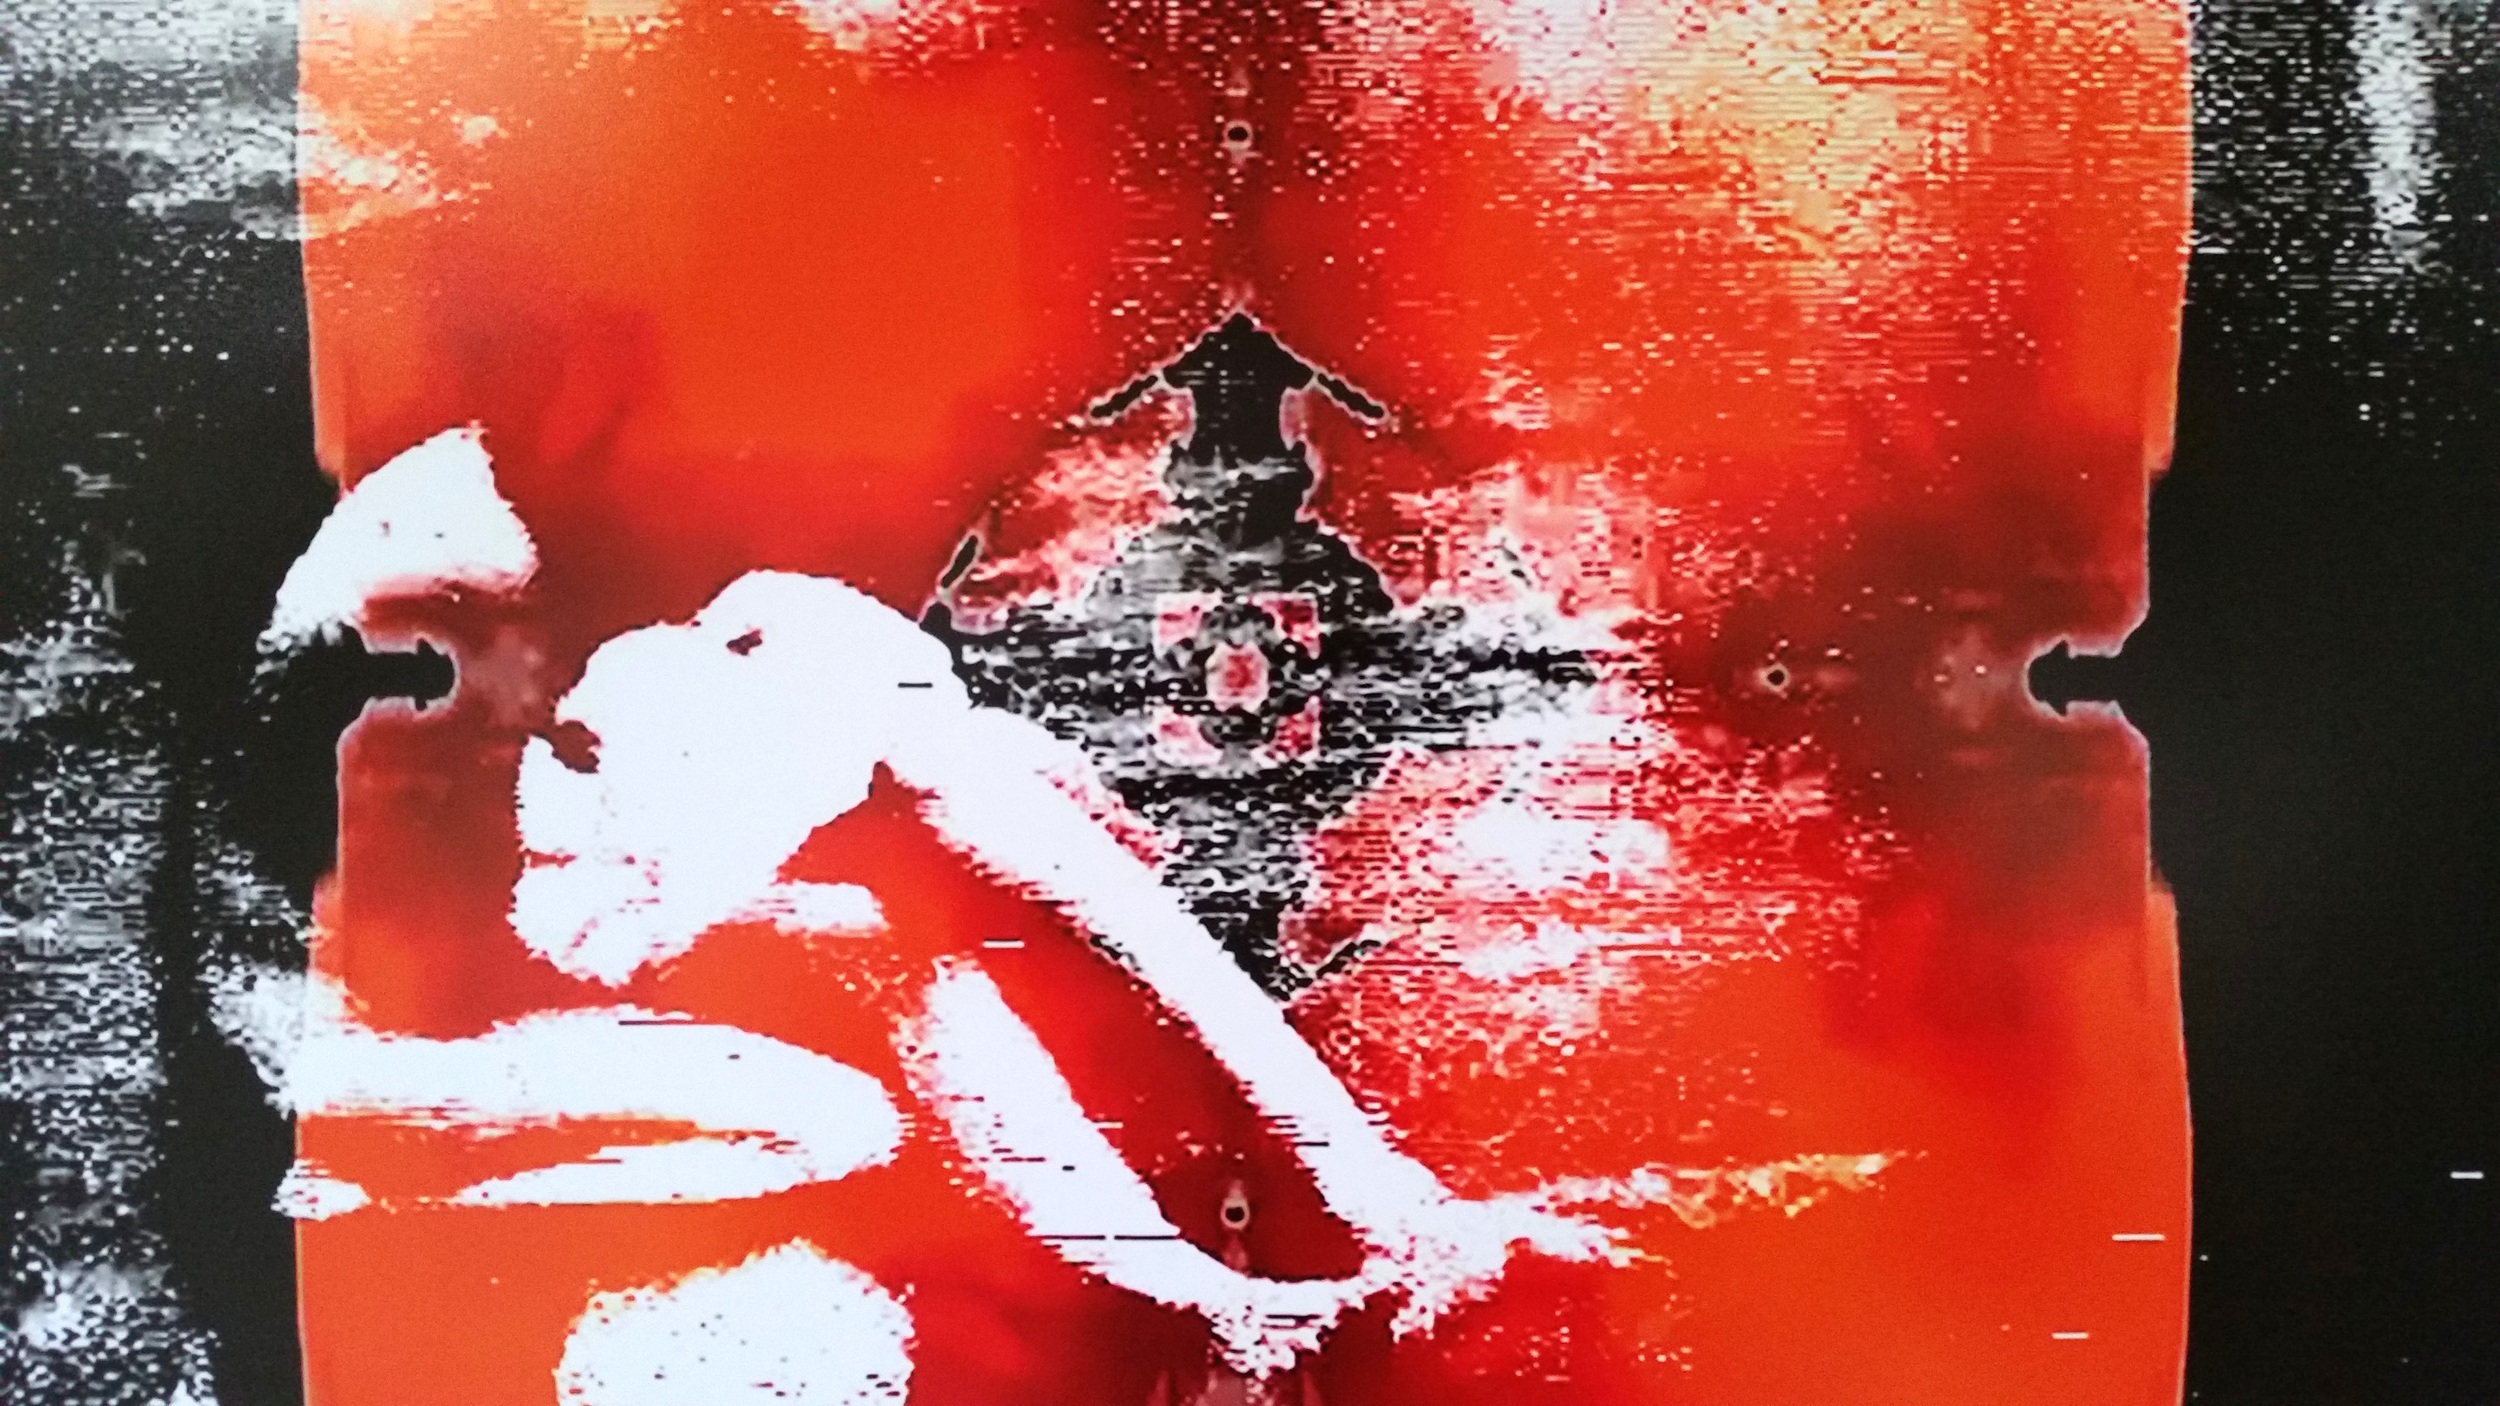 """Faustus"" - Still from Video D :   ""How Faustus had a sight of Paradise"" - The Root Chakra - C-Print - 18"" x 12"" - Ed. 3 + A.P."